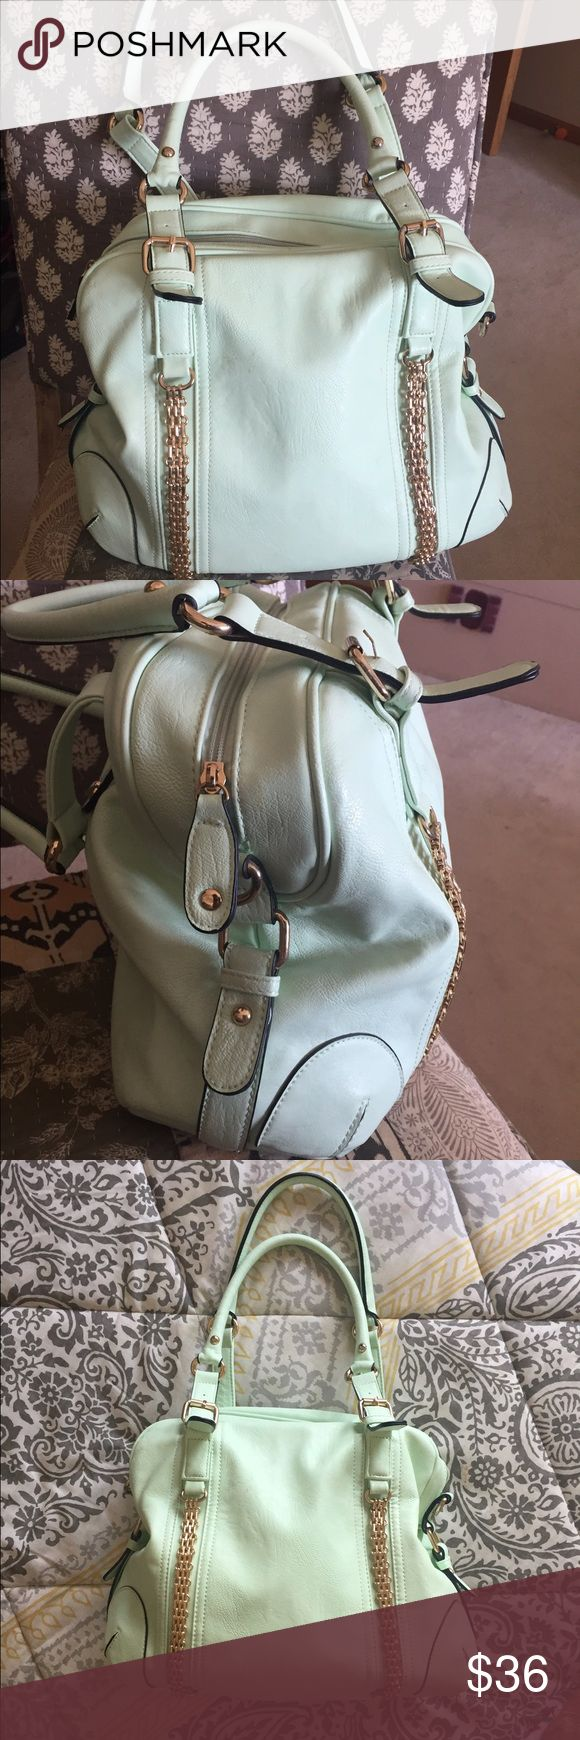 Wilson's leather mint green shoulder bag. Wilson's Leather mint green shoulder bag with pretty gold accents.  (Brand says Black River, but was purchased at Wilsons). Very pretty for spring and summer.  Very pretty floral interior as pictured.  Gold chains on front still great shape.  This is gently used and has a faint scuff on the front near the top as pictured, and a faint mark on the top by the zipper as pictured.  Measures 14x11x 5 1/2.  Not 100% ready to part.... Black Rivet Bags…